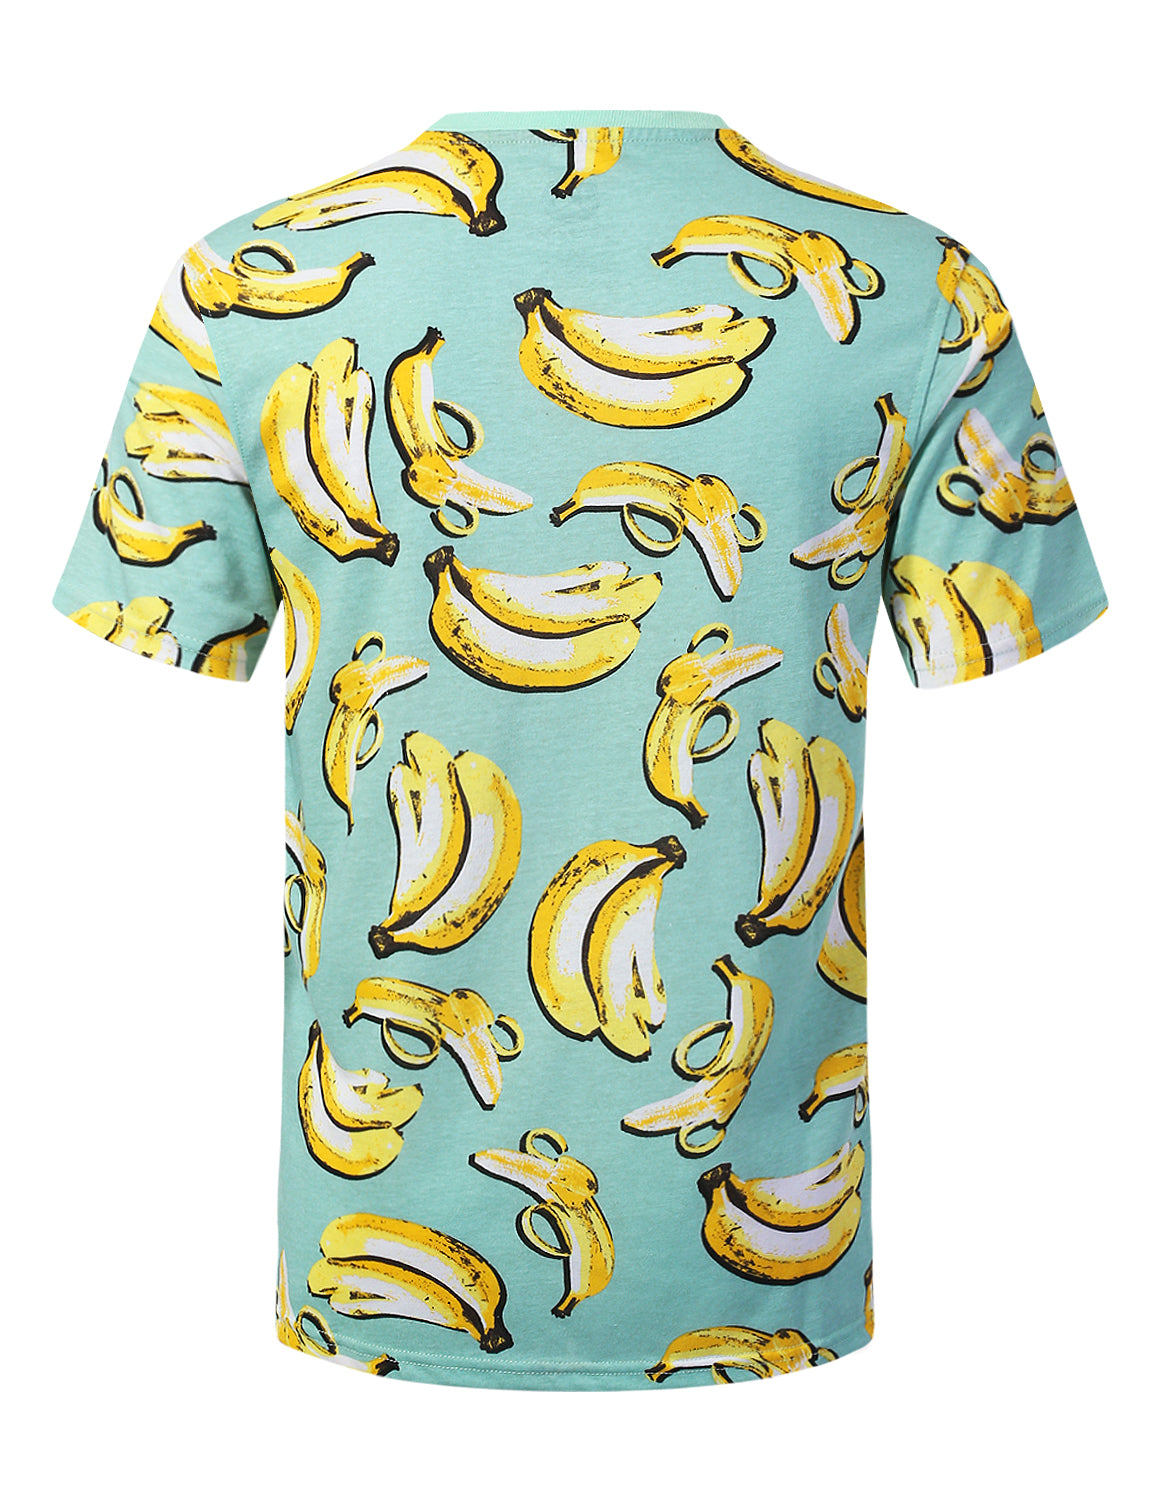 BANANA Big Food Pattern Graphic Print T-shirt - URBANCREWS